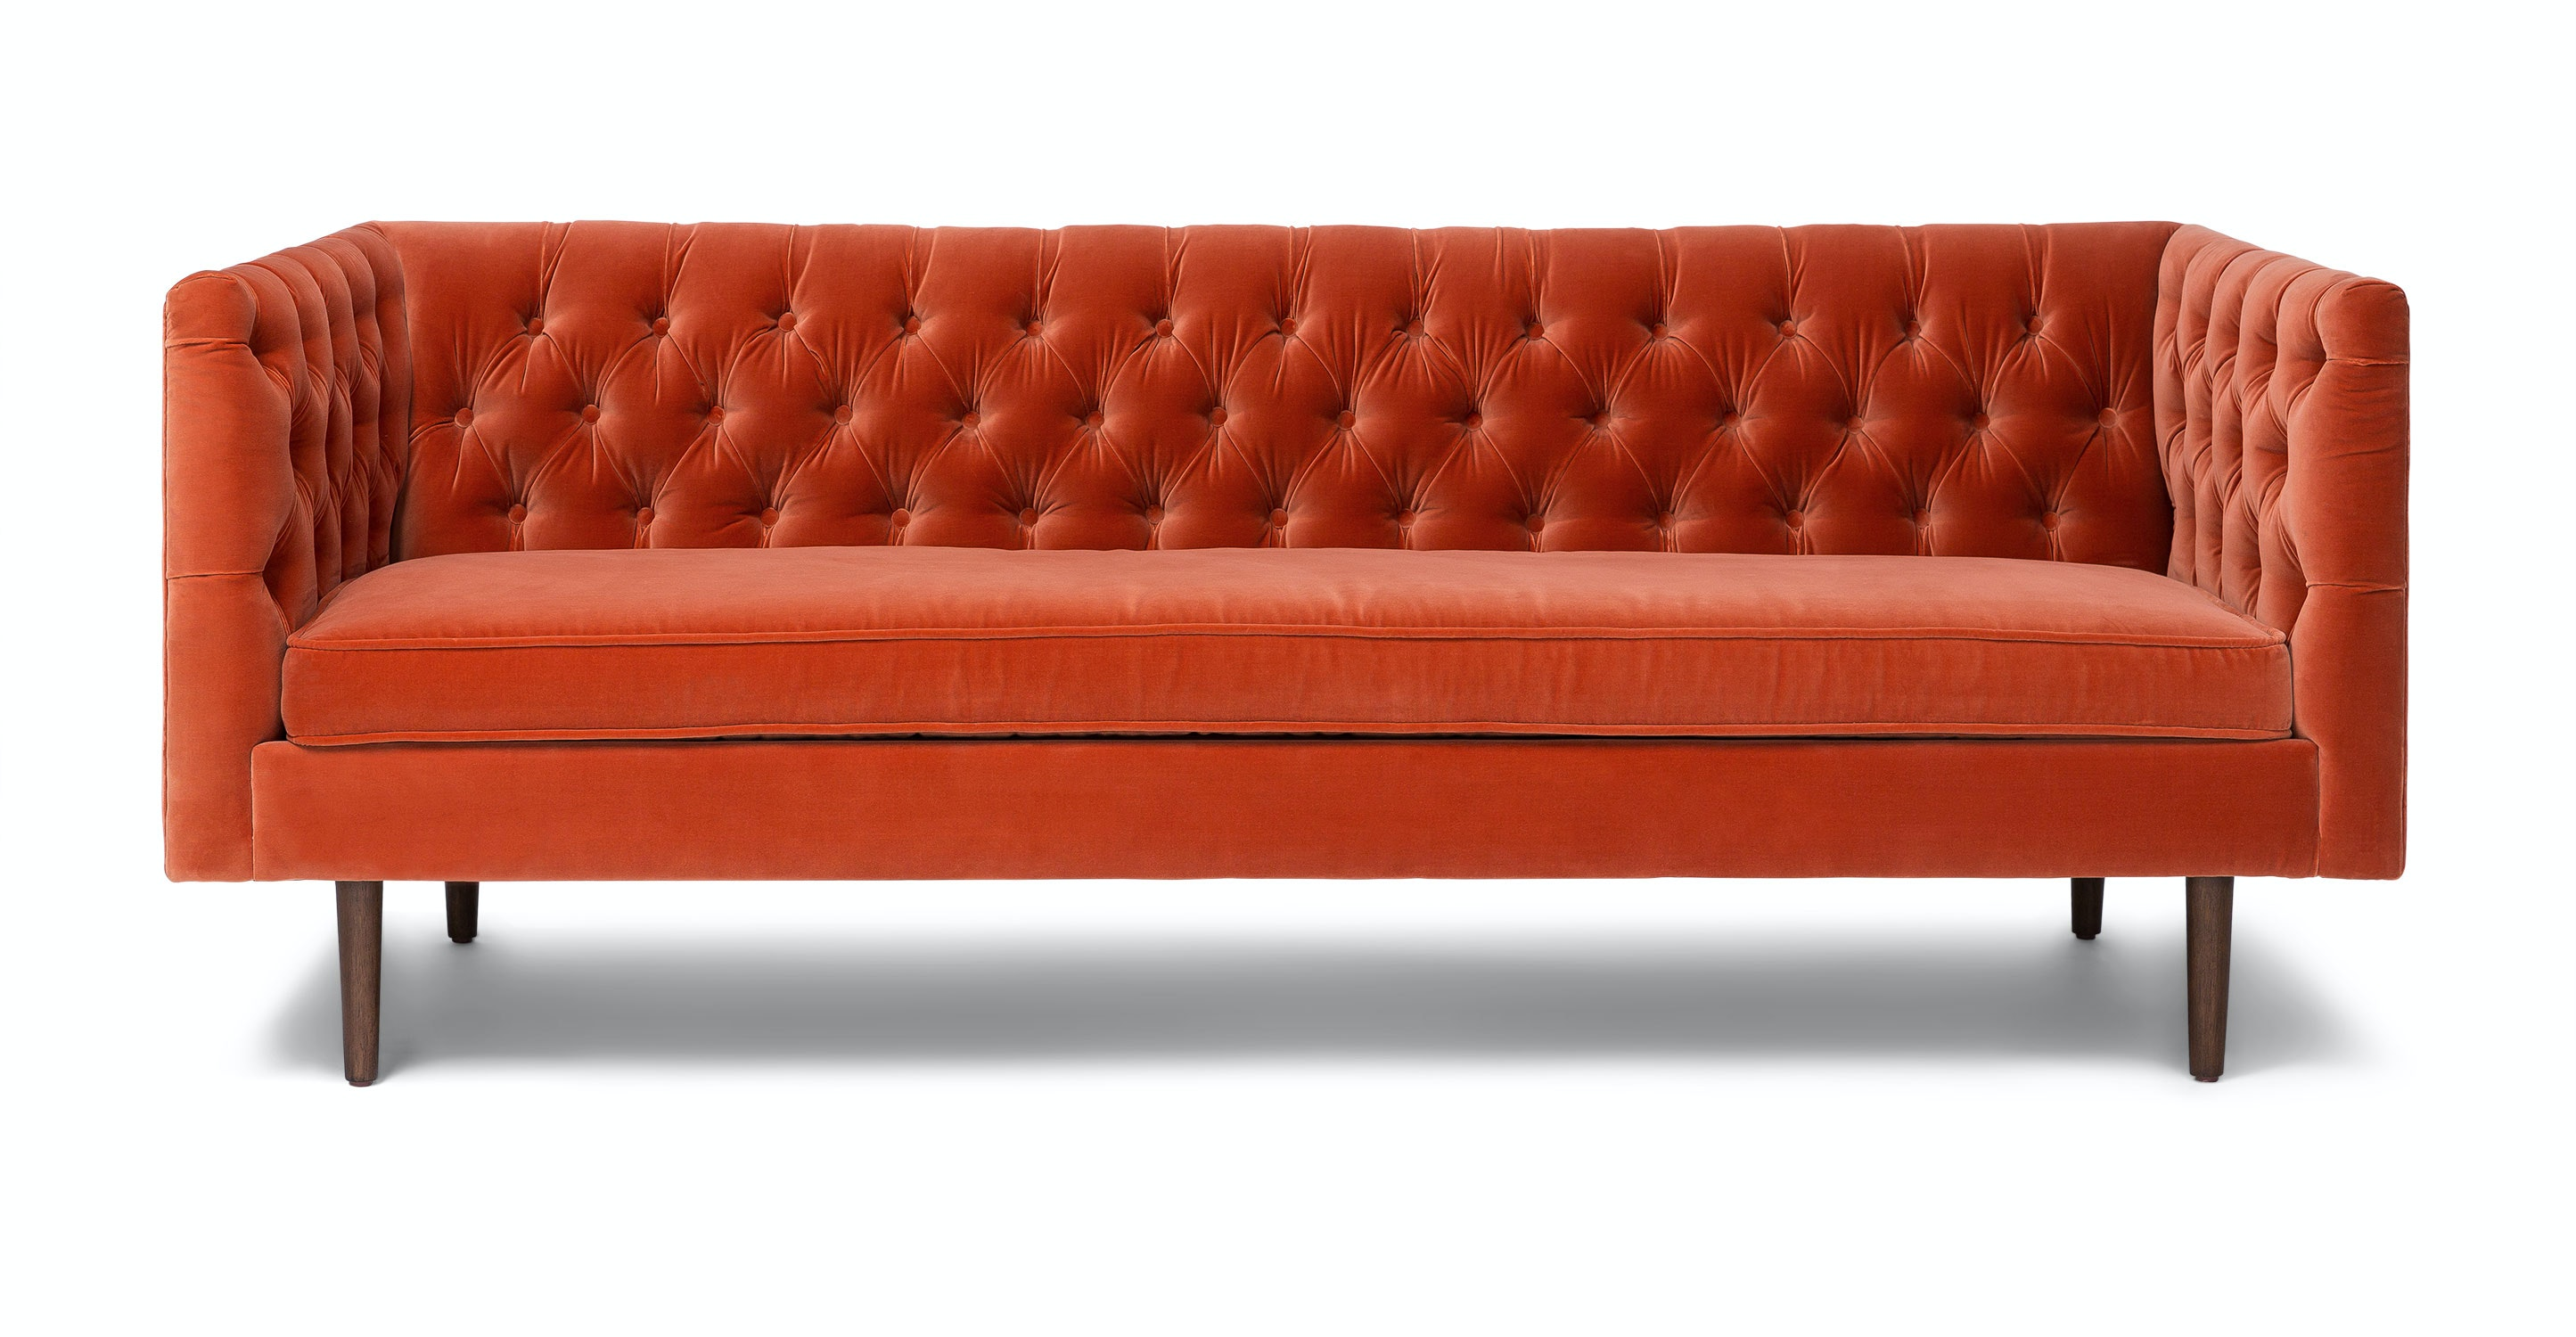 Chester Persimmon Orange Sofa Sofas Article Modern Mid Century And Scandinavian Furniture